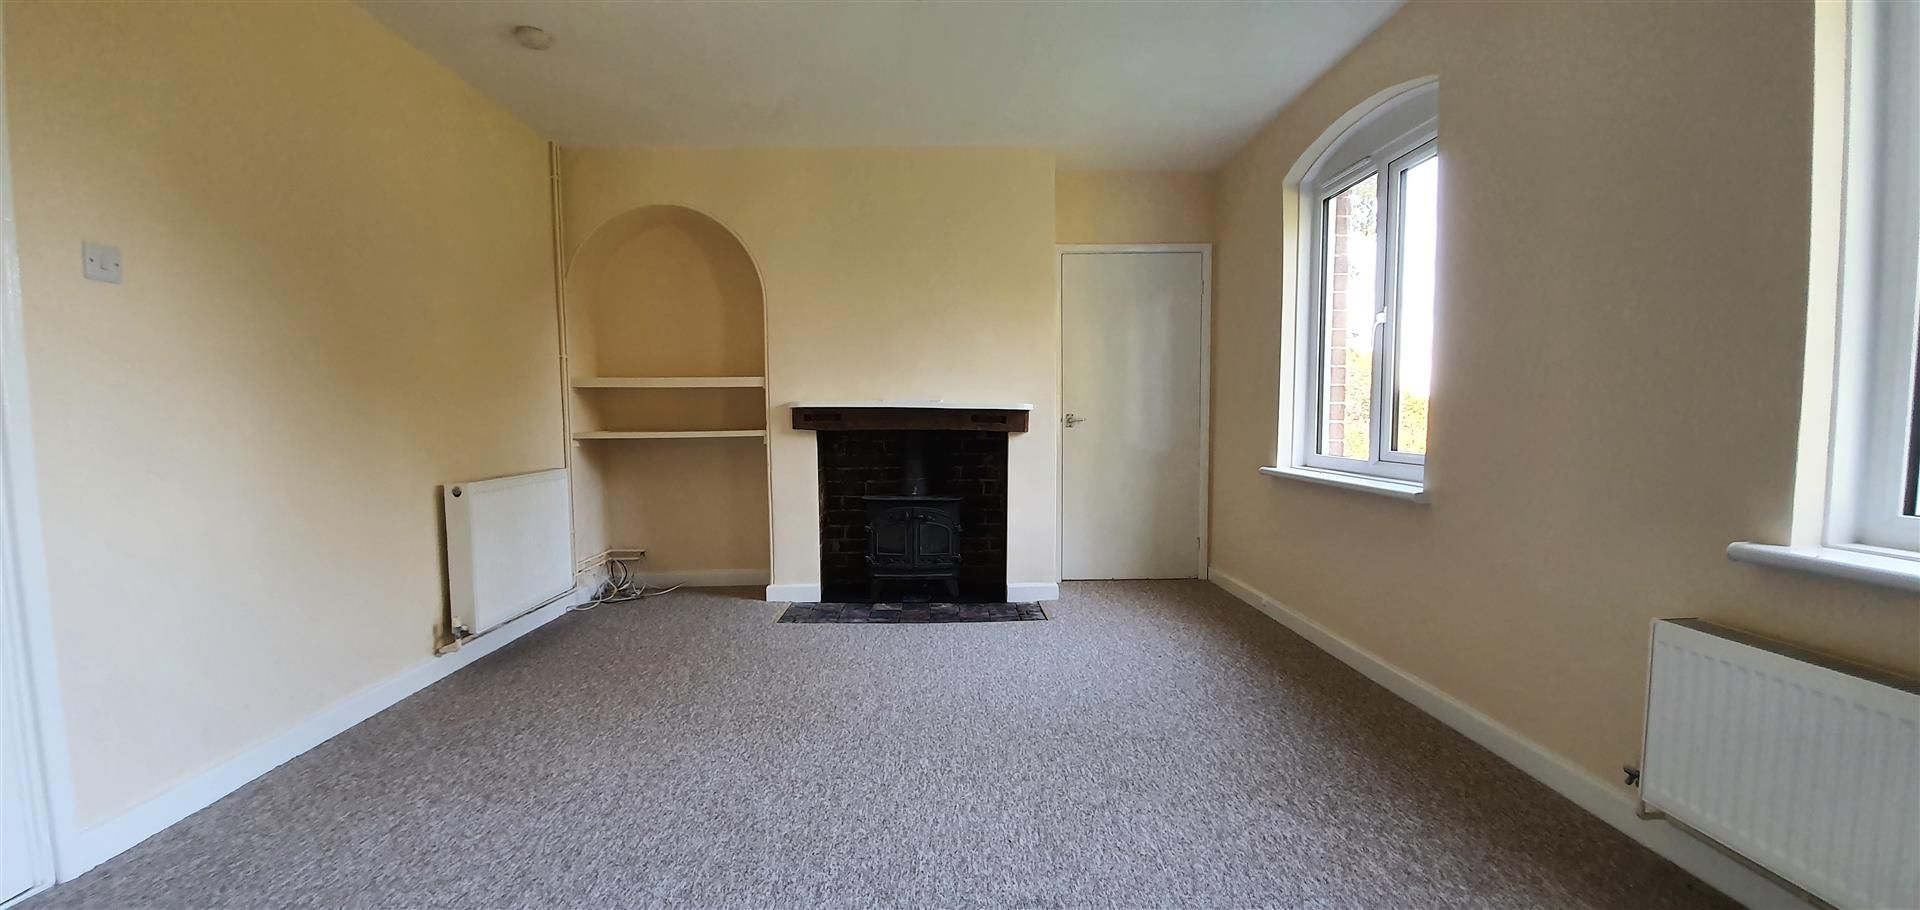 4 bed house to rent in Breinton  - Property Image 5